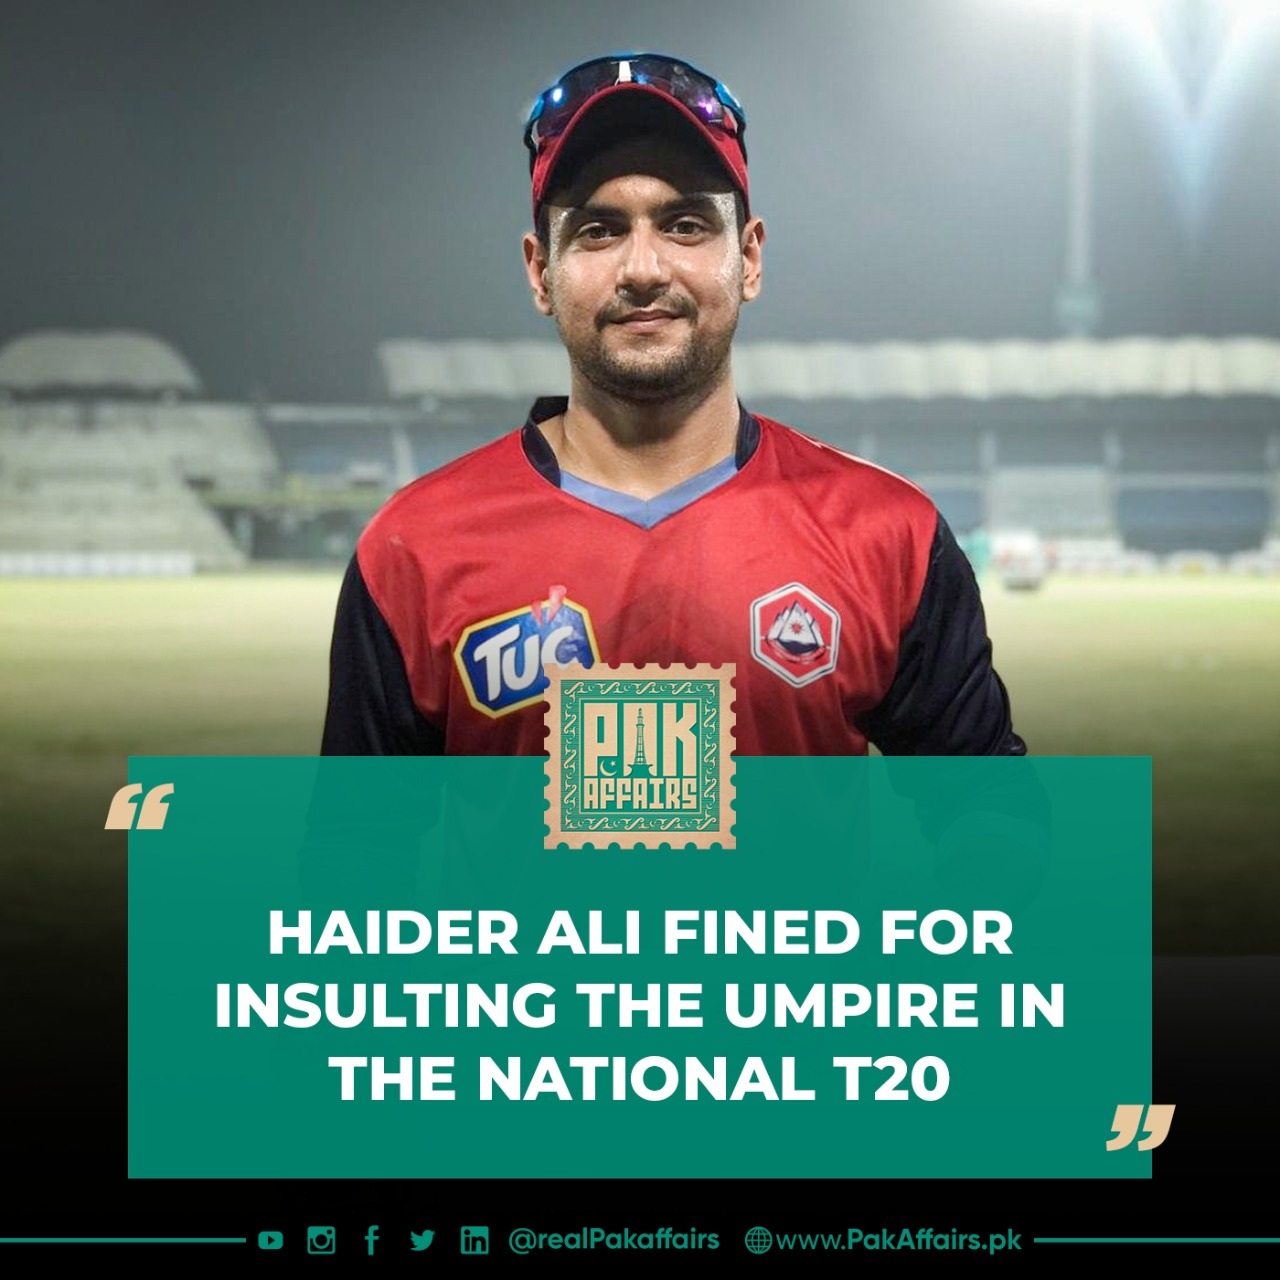 Haider Ali fined for insulting the umpire in the National T20